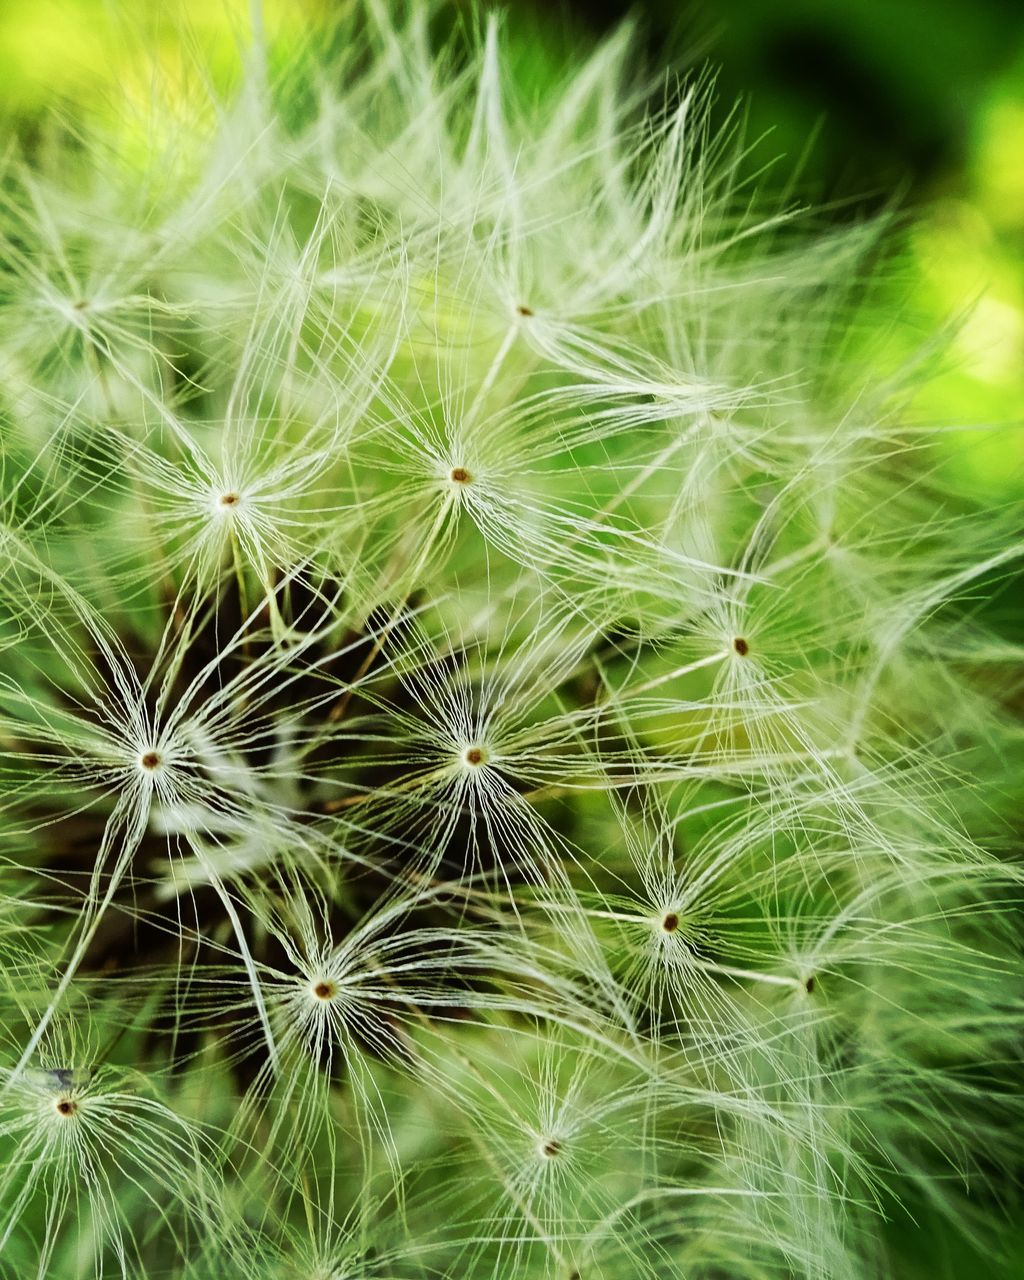 dandelion, flower, fragility, nature, dandelion seed, freshness, beauty in nature, growth, softness, close-up, botany, wildflower, flower head, outdoors, no people, uncultivated, seed, plant, focus on foreground, green color, day